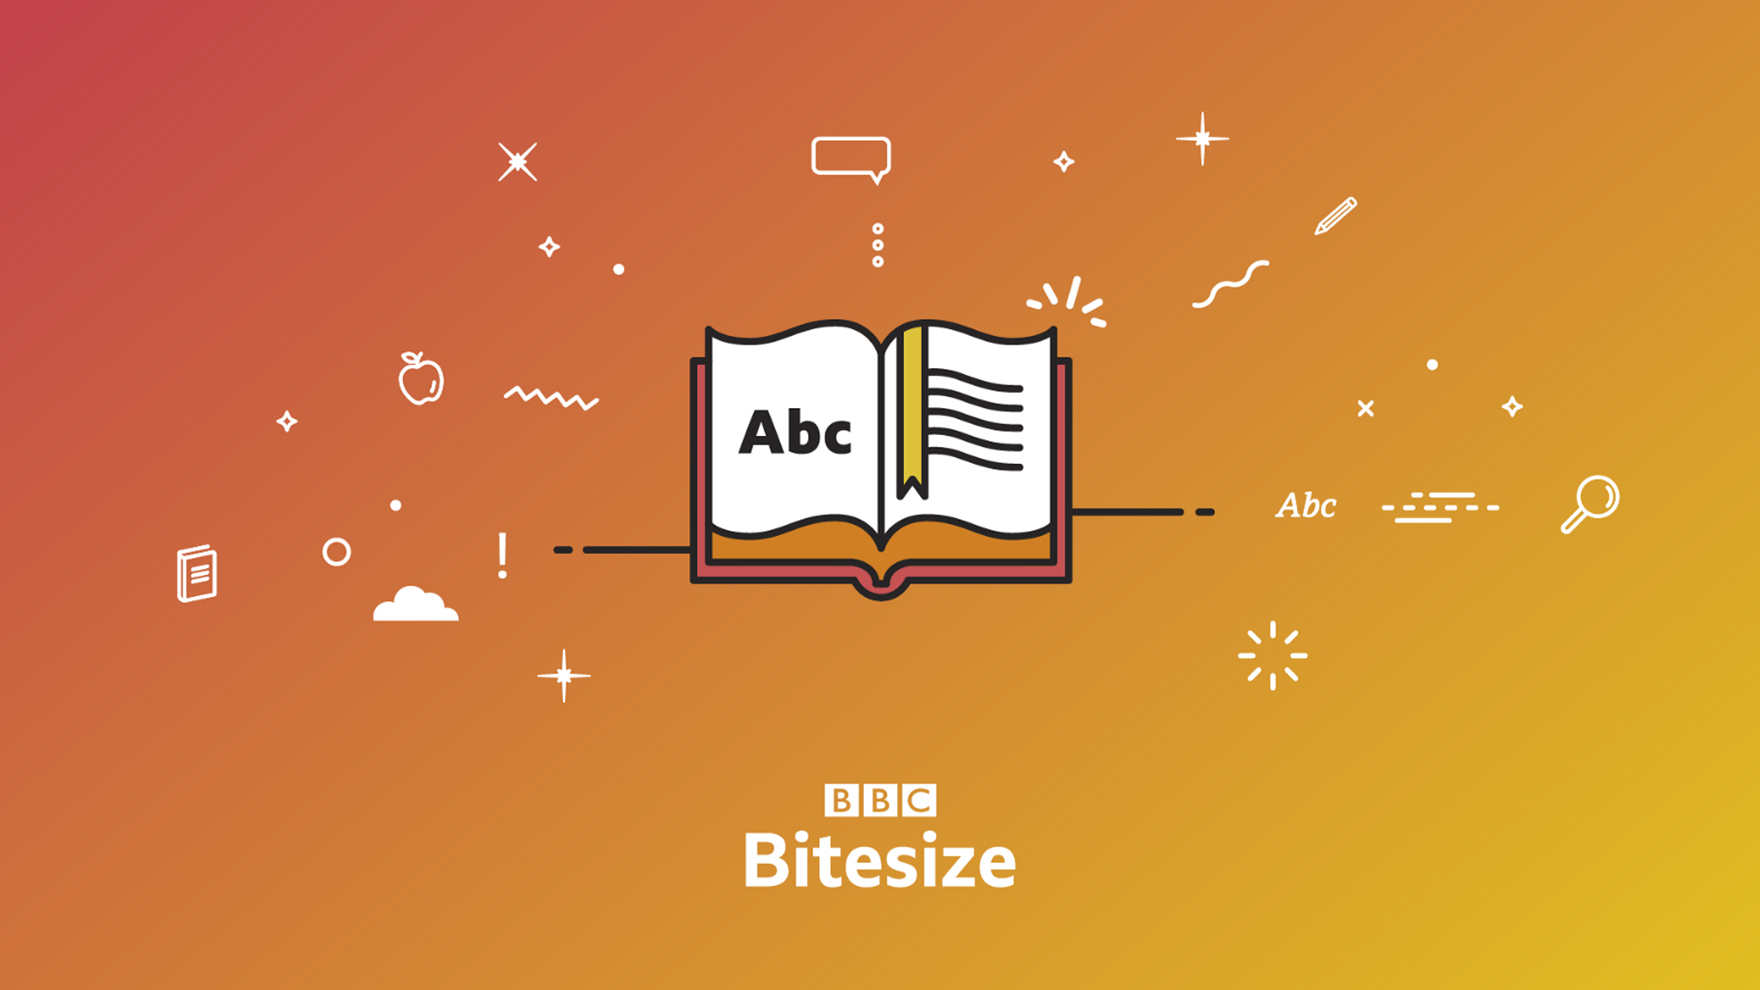 Rebranding BBC Bitesize: How to keep your cool as a UX designer in Articles